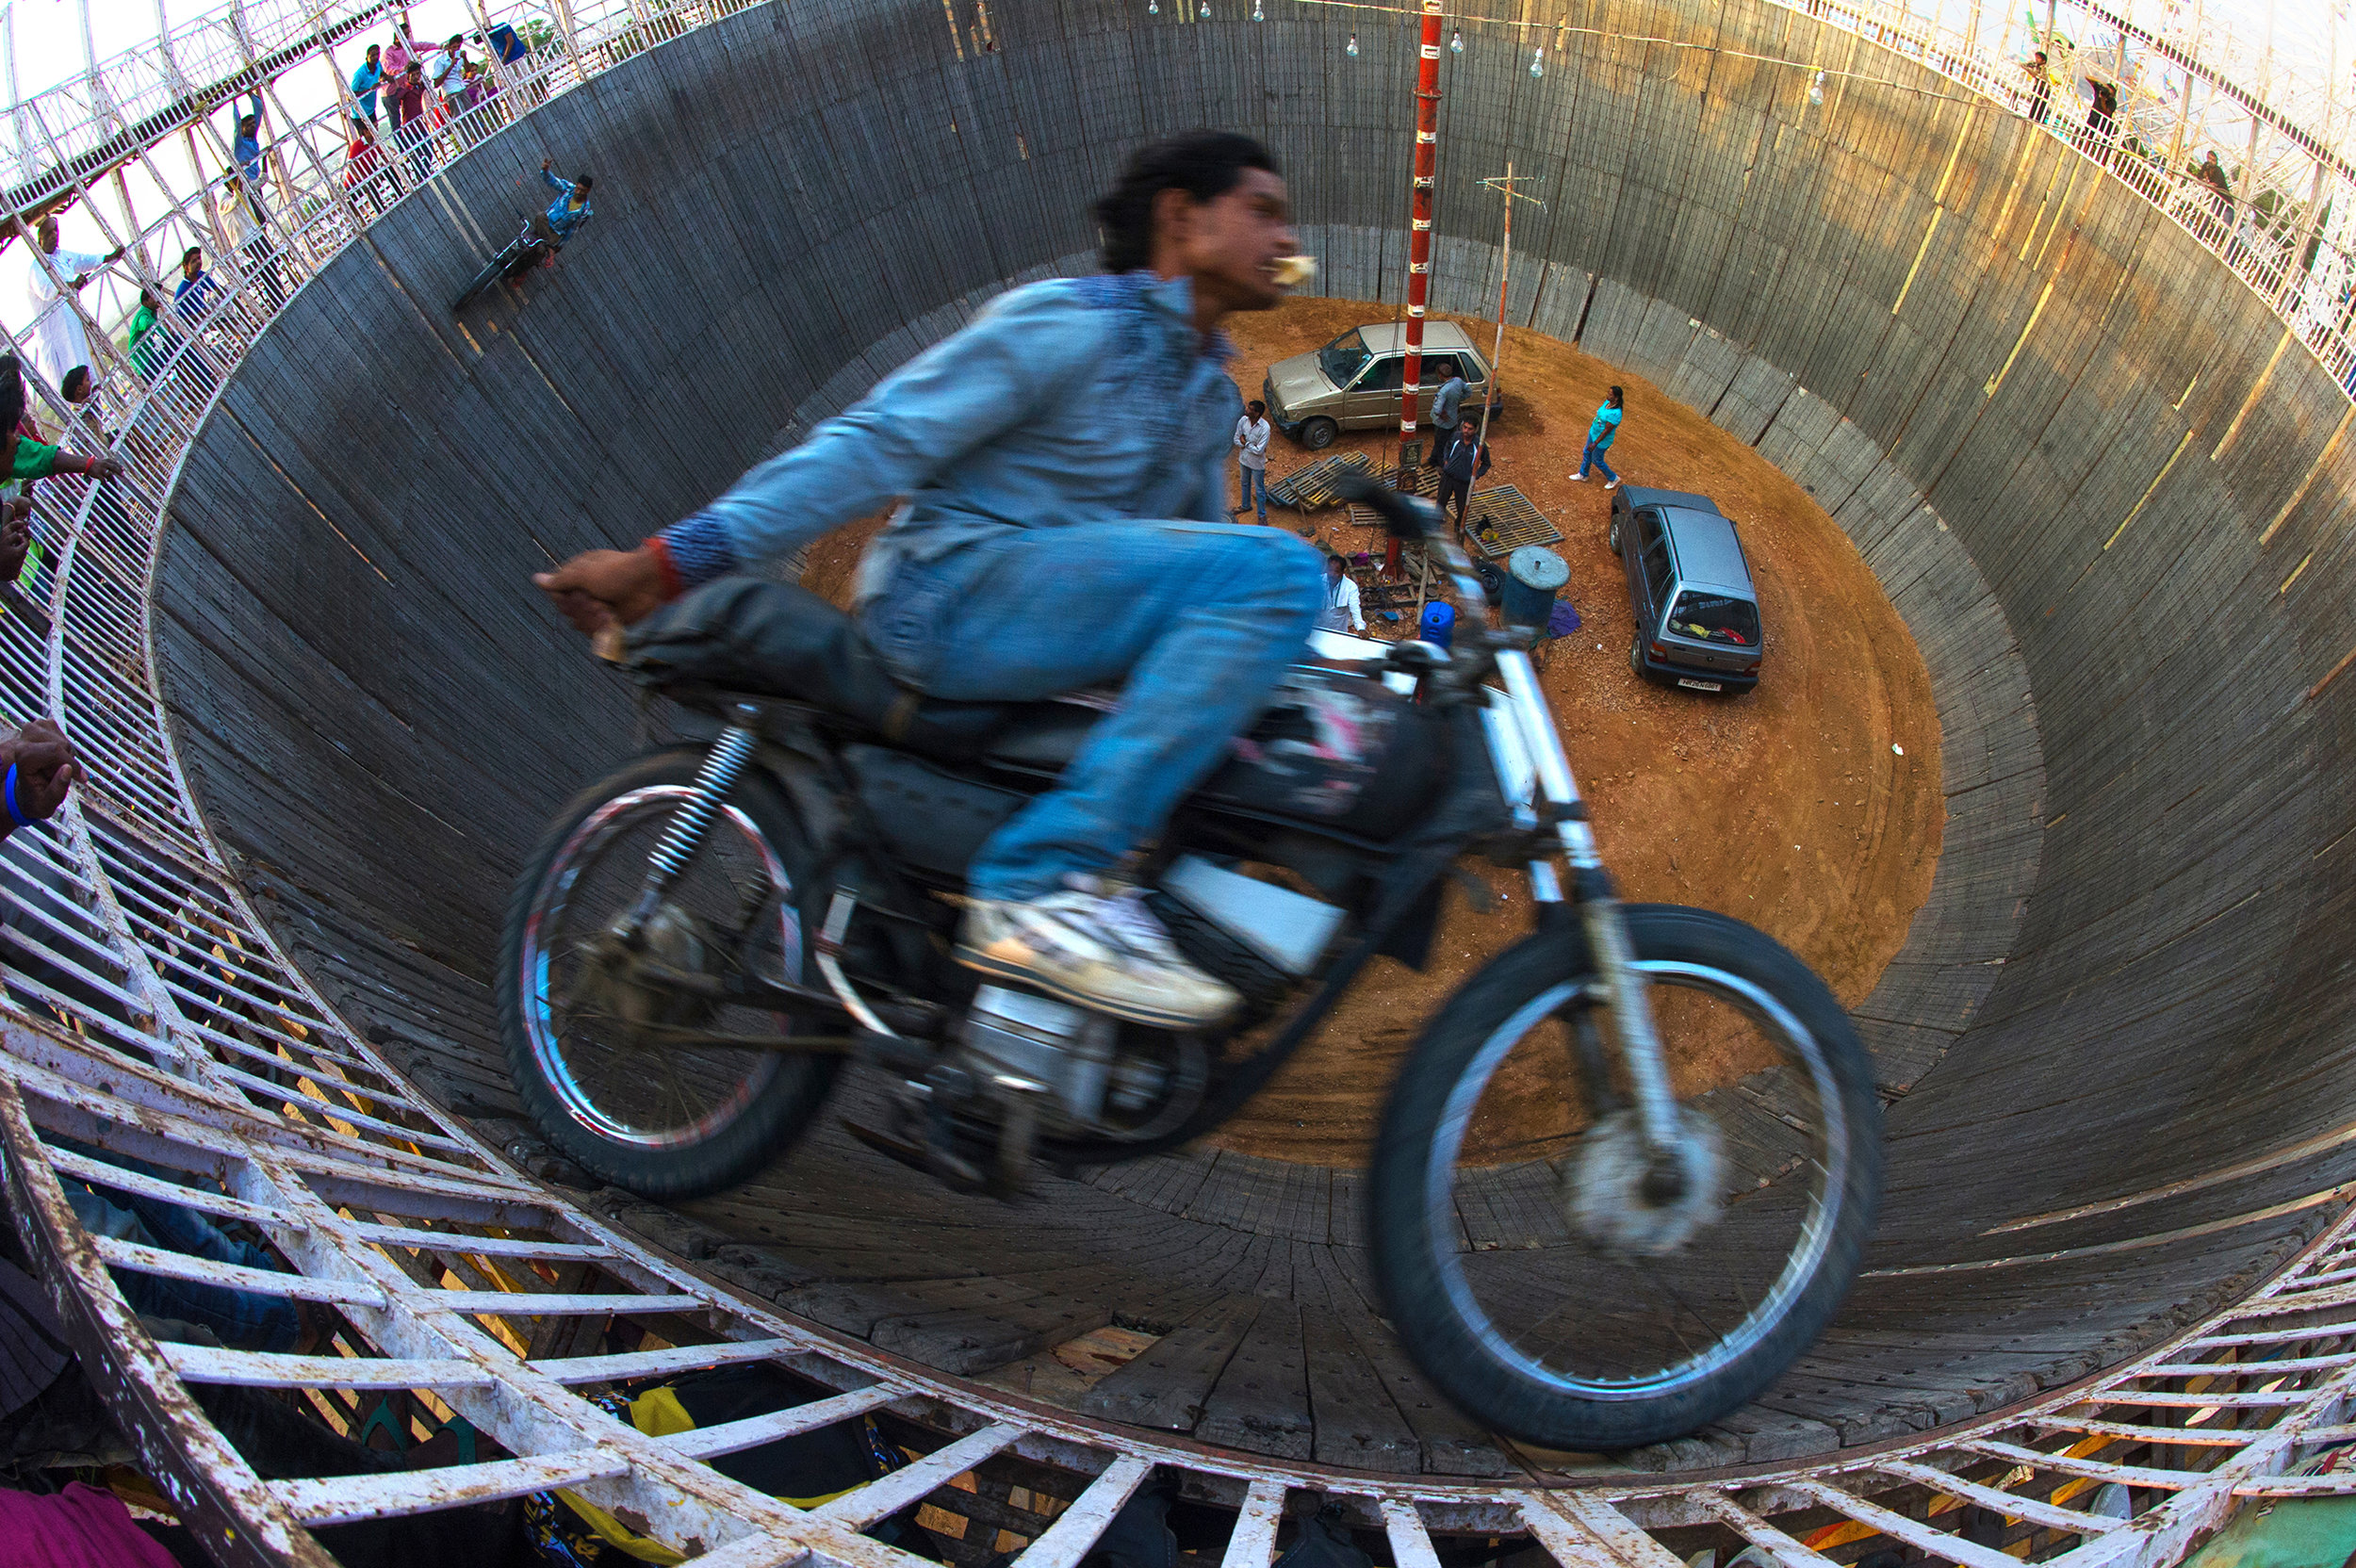 WELL OF DEATH MOTO